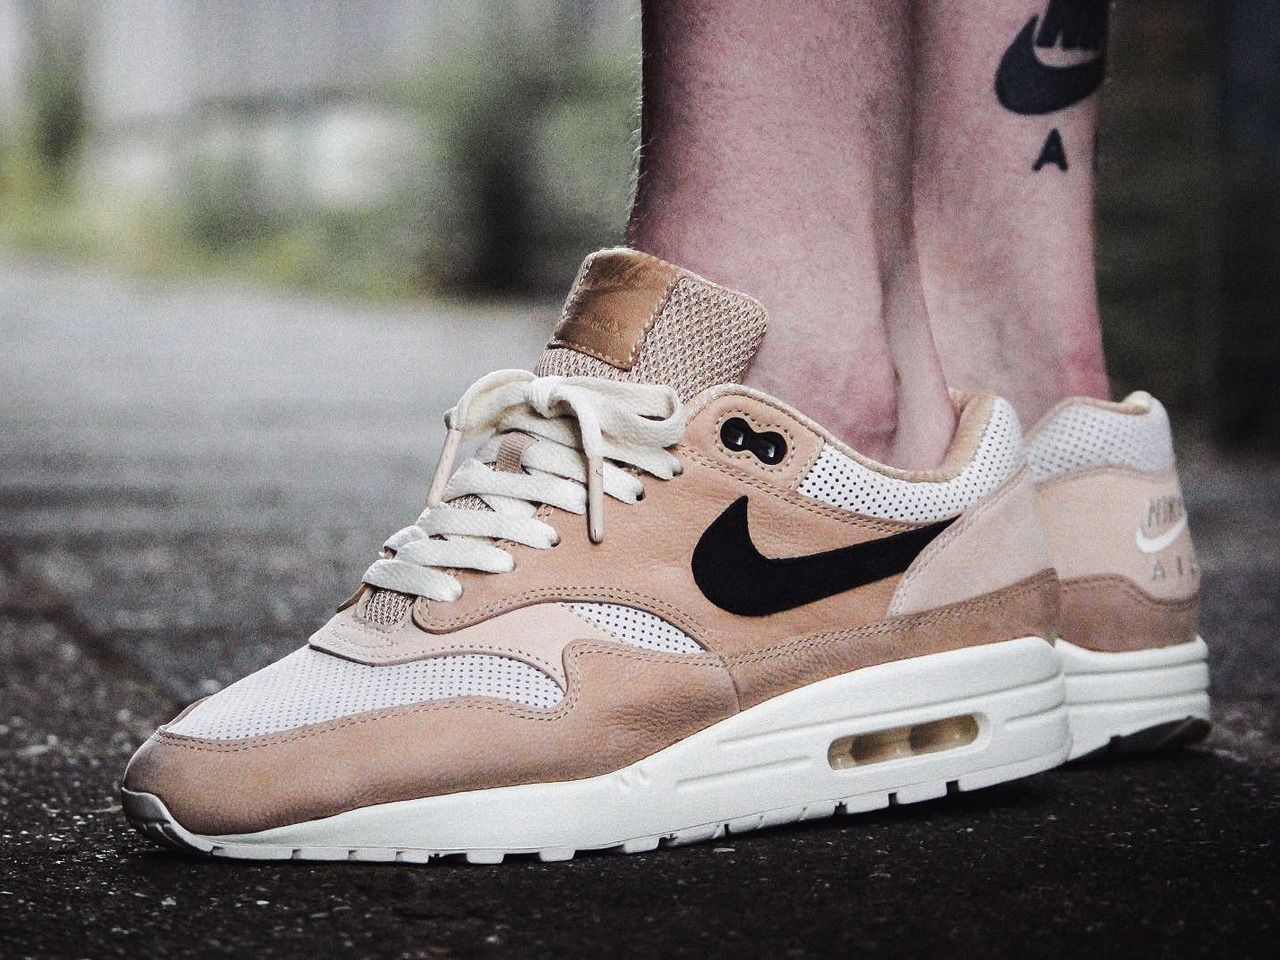 Pasto Ambicioso pozo  Nike wmns Air Max 1 Pinnacle - Mushroom/Black/Light Bone - 2017 (by  maikelboeve) Buy it: Overkill / End Clothing / Sneakersnst… | Nike air shoes,  Nike, Nike air max